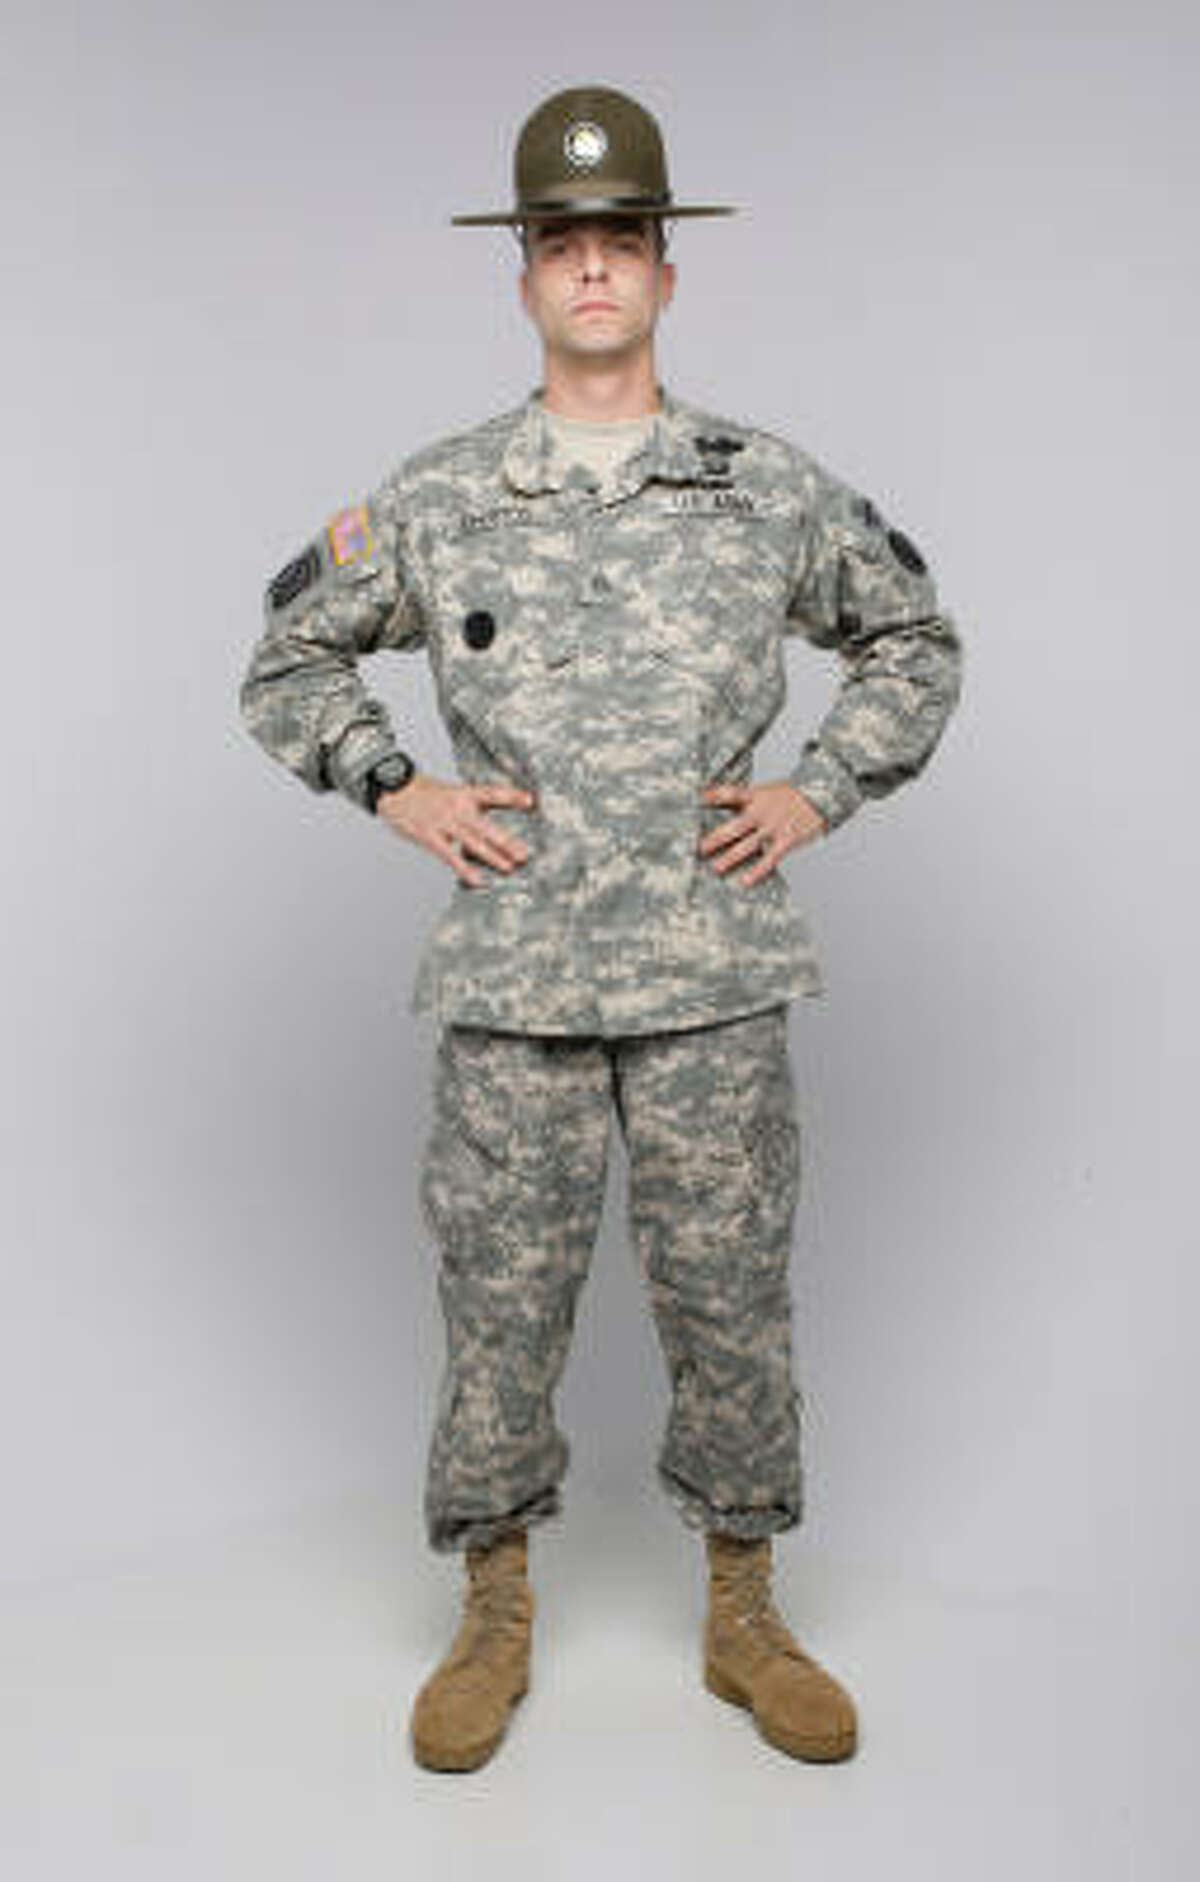 U.S. Army Drill Sergeant of the Year Michael Johnston wants you to shape up now.